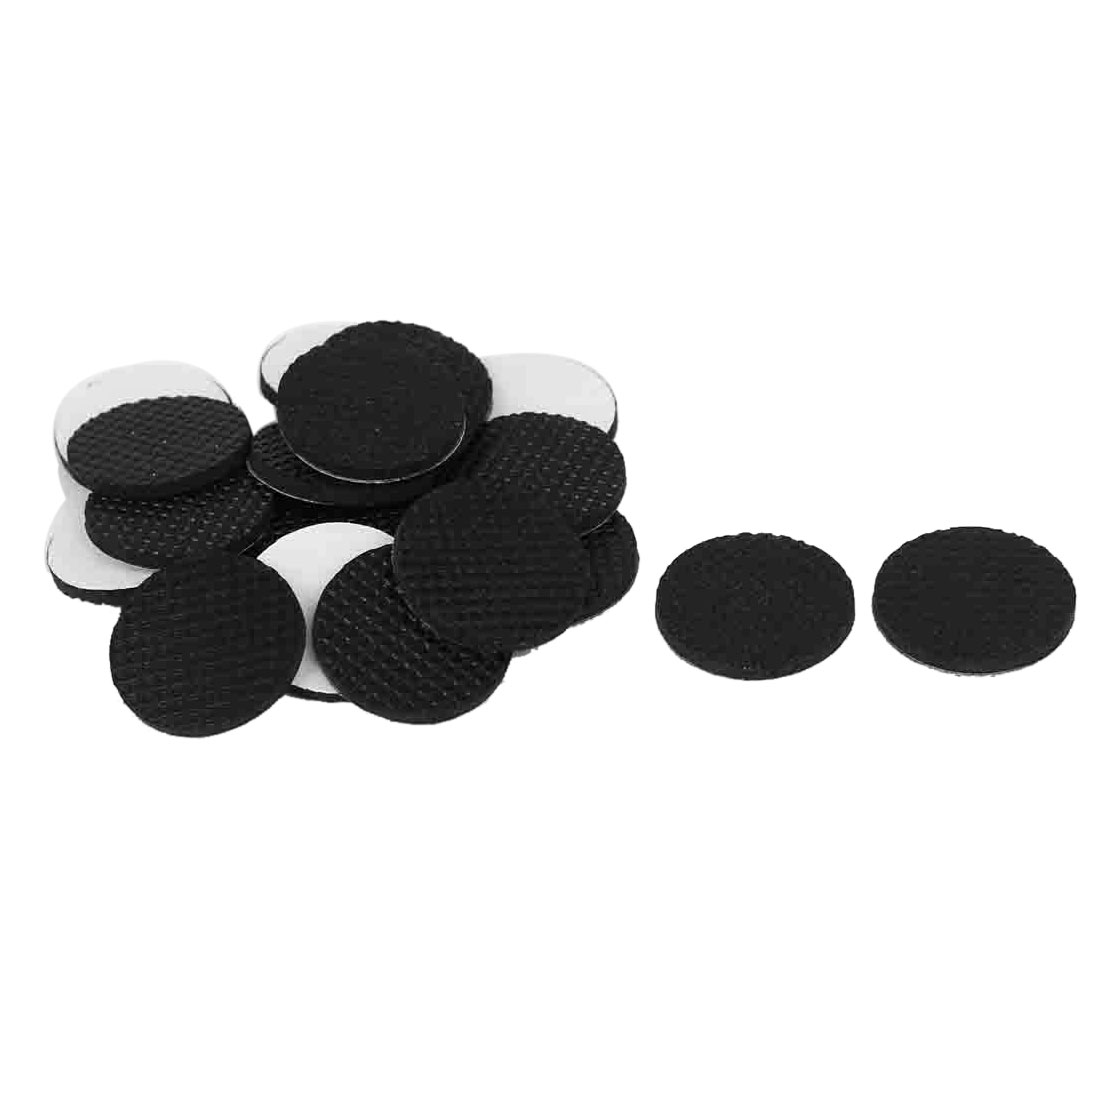 20mm Dia Anti Slip Adhesive Rubber Pad 20 Pcs for Furniture Chair Table Feet